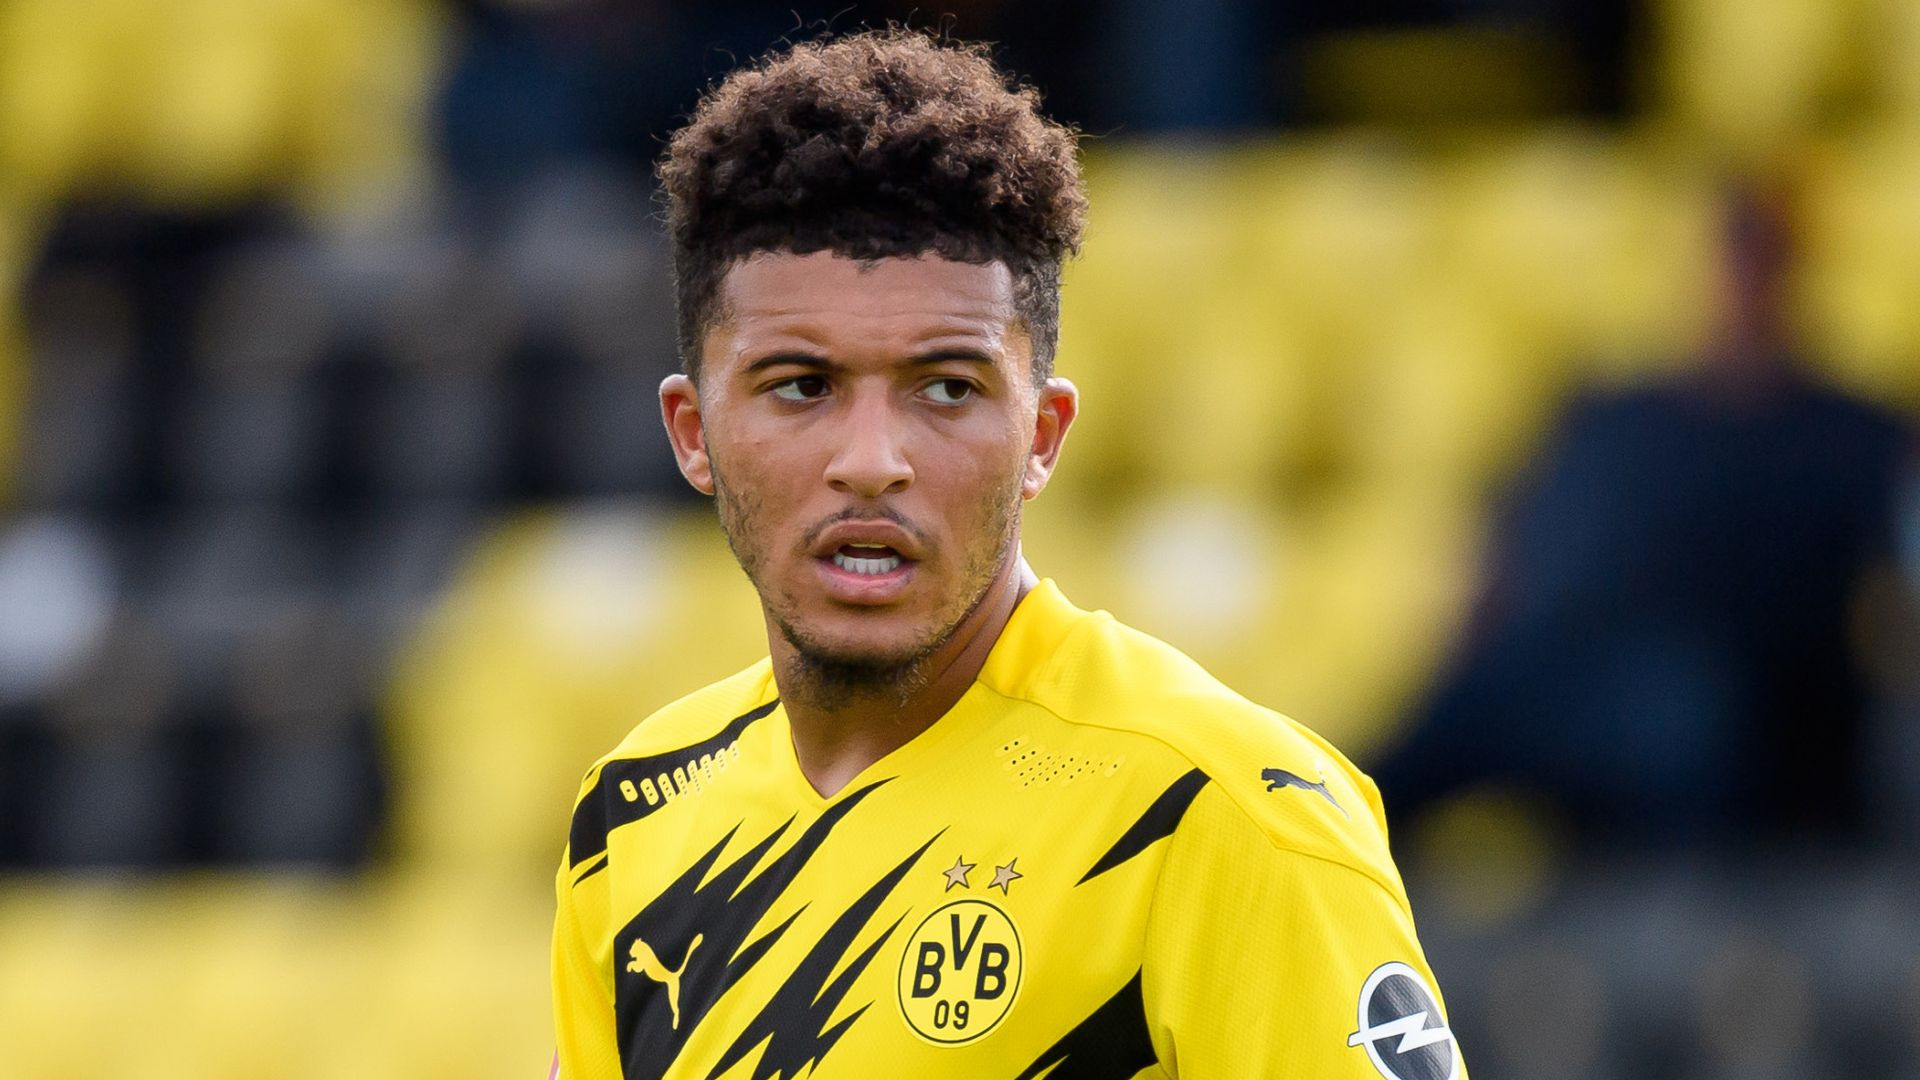 Man Utd expected to make Sancho bid this week